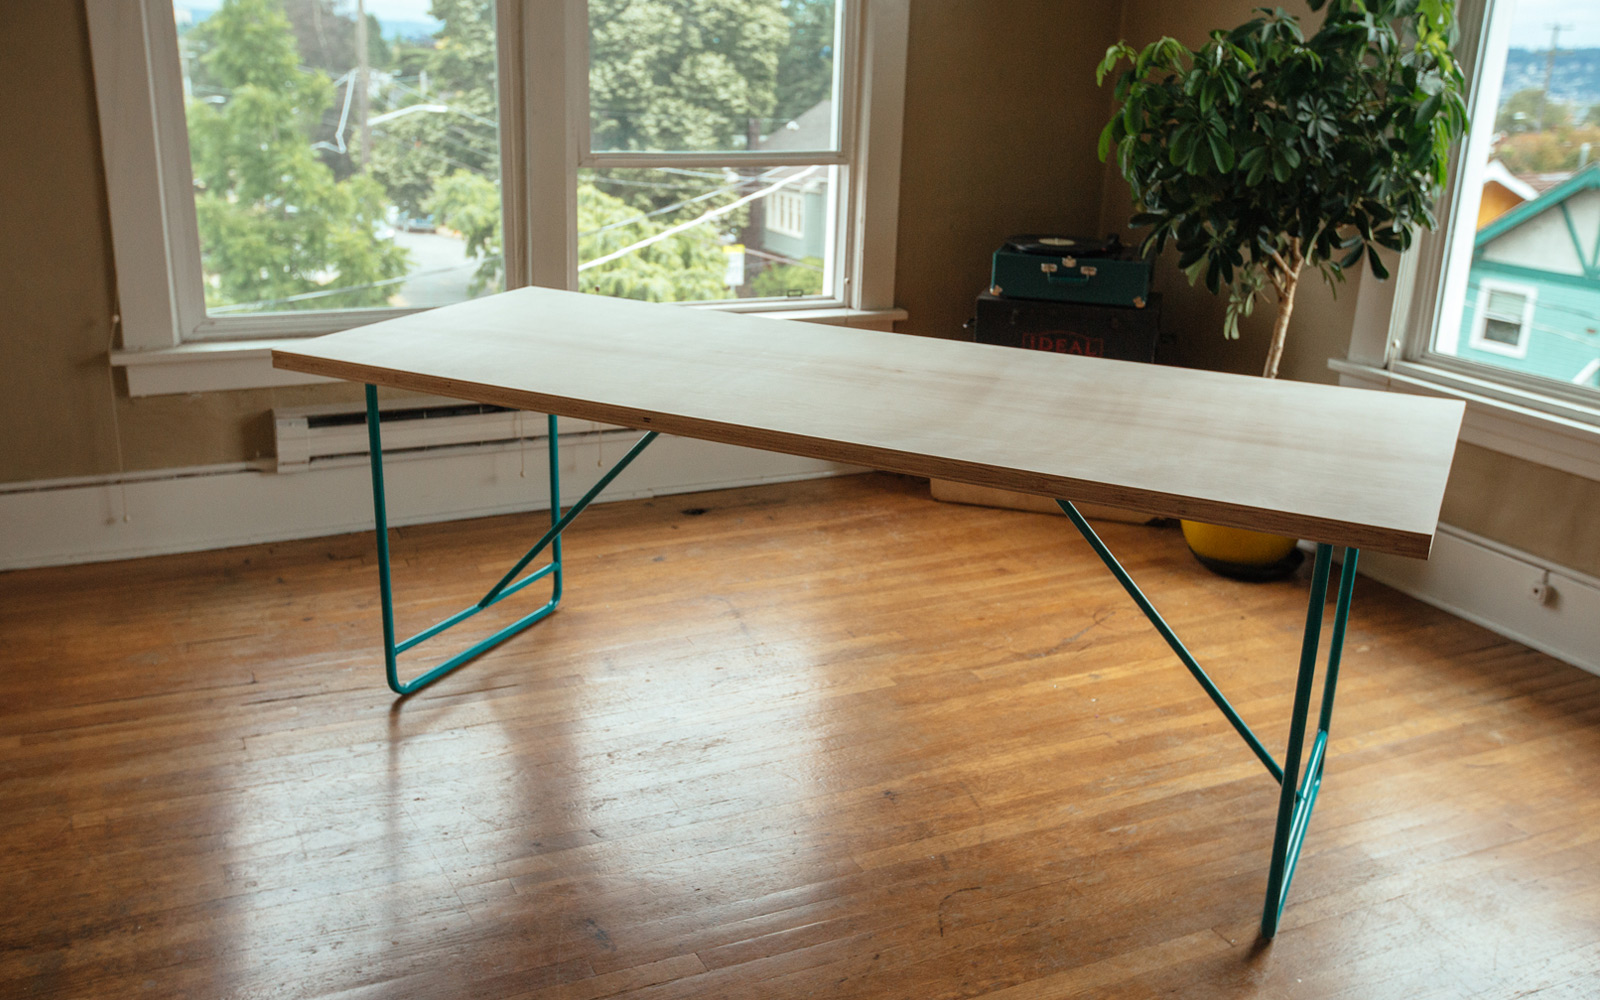 diy mid- century modern dining room table - home improvement